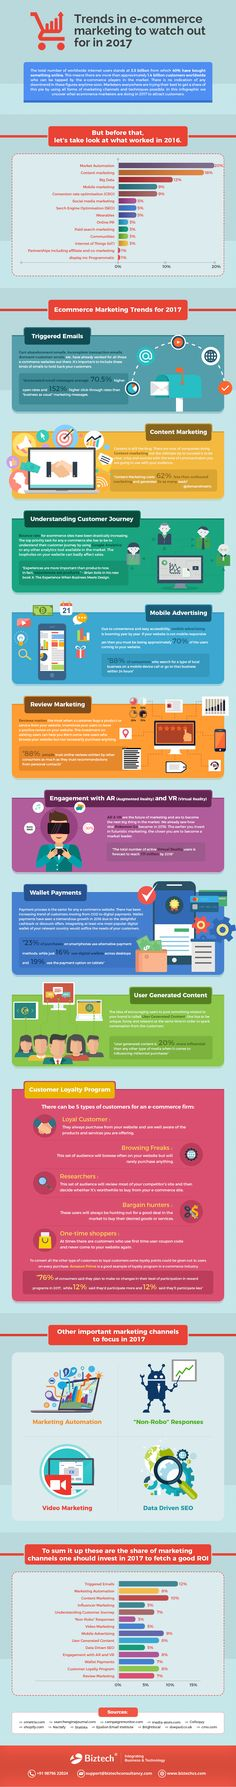 Ecommerce Website Marketing: Trends to Take Advantage of in 2017 [Infographic]